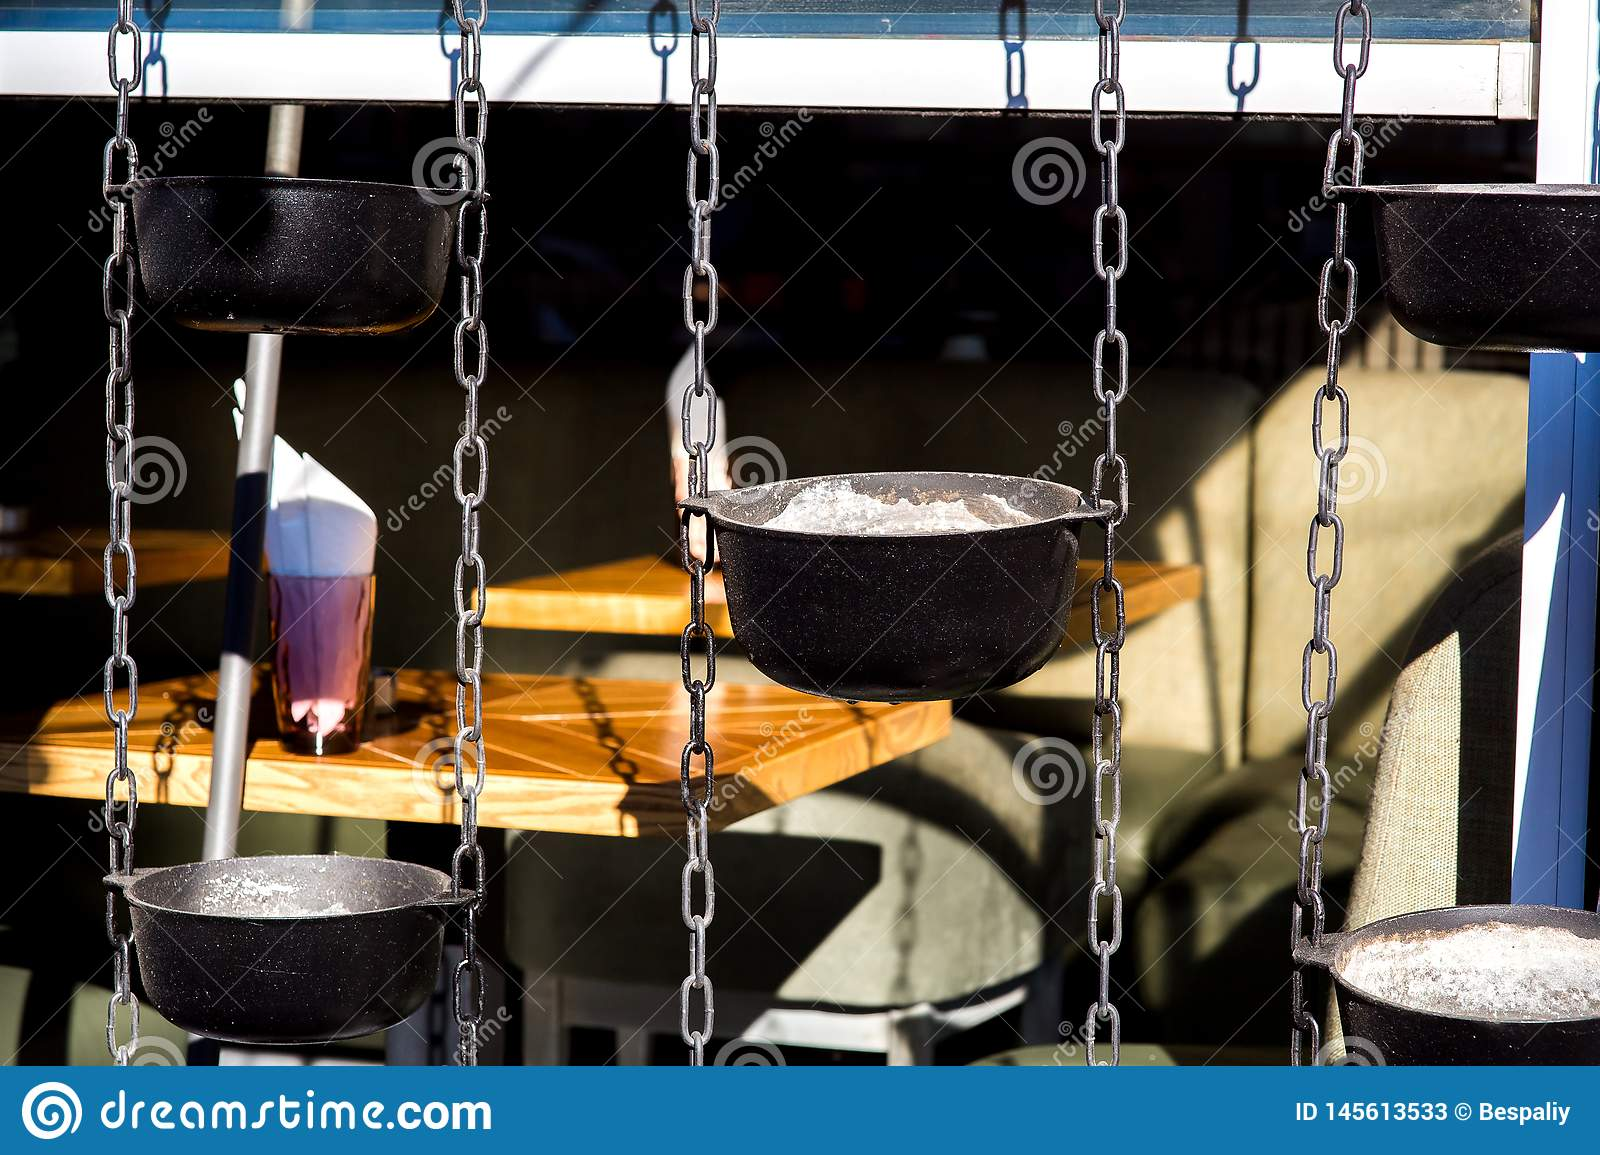 Street Cafe With The Decor Of Hanging Cauldrons On Chains Stock Image Image Of Cauldrons Hanging 145613533